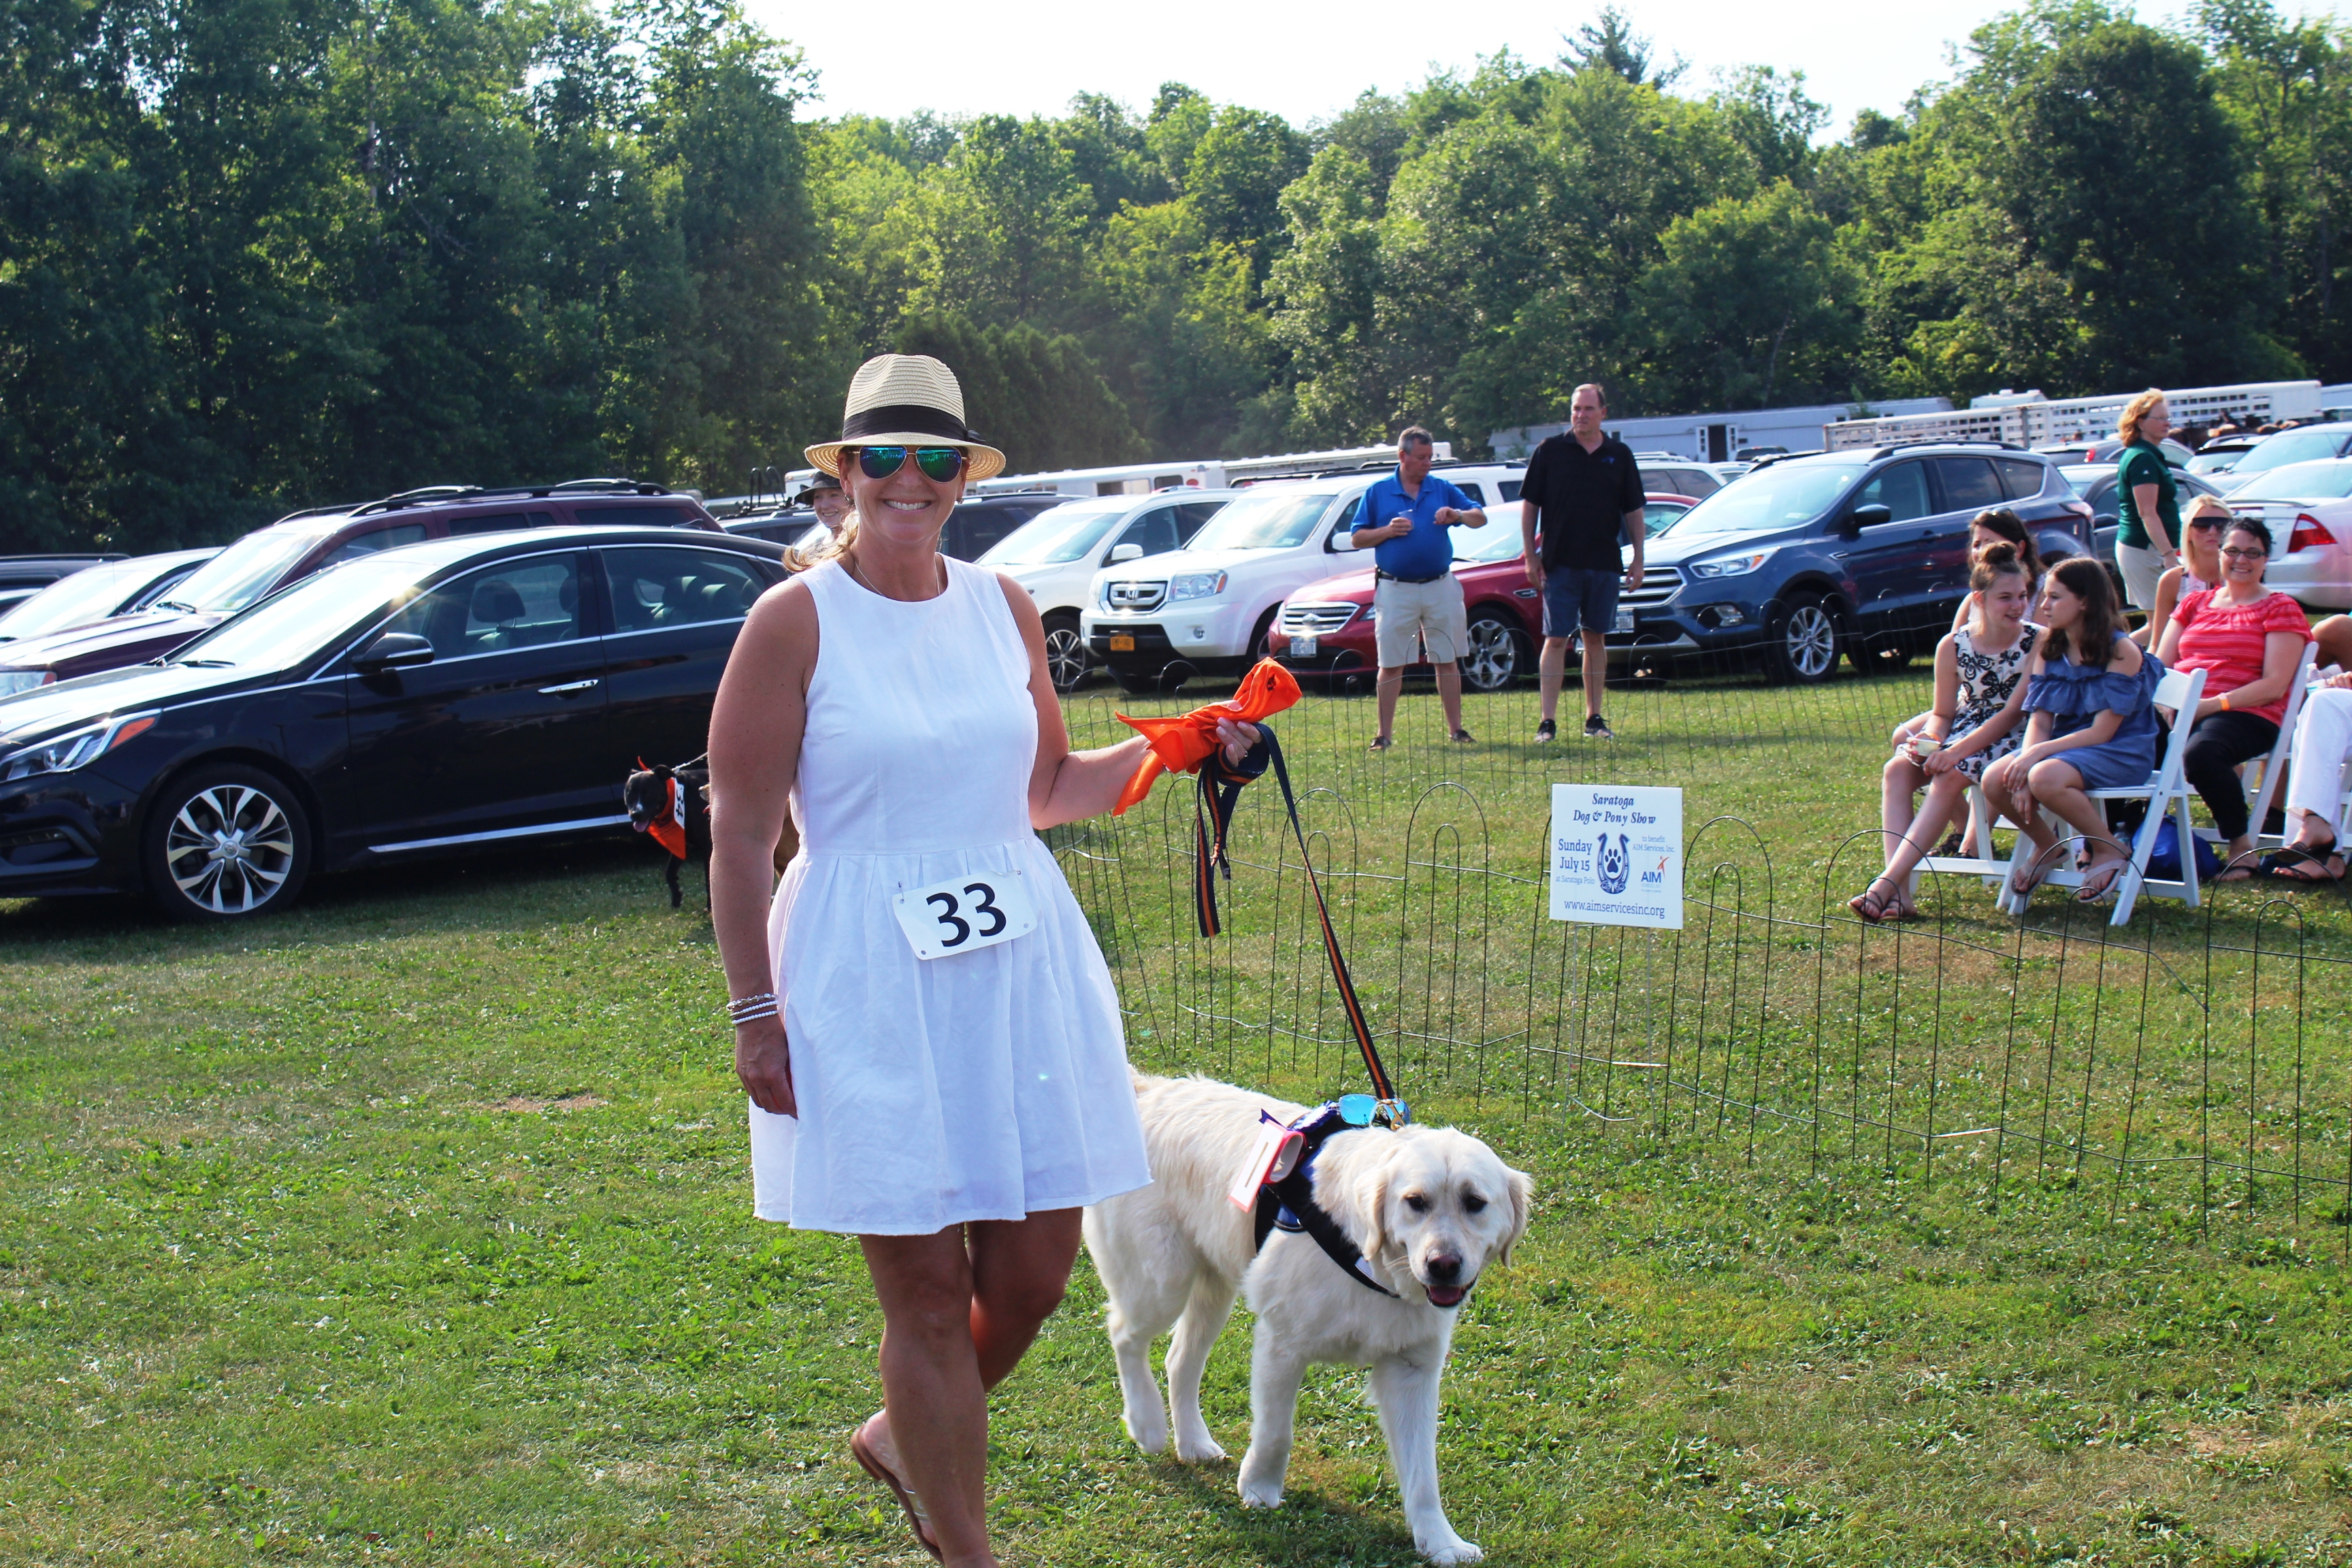 Woman smiling with dog at the Saratoga Dogs Pony Show to benefit AIM Services, Inc.